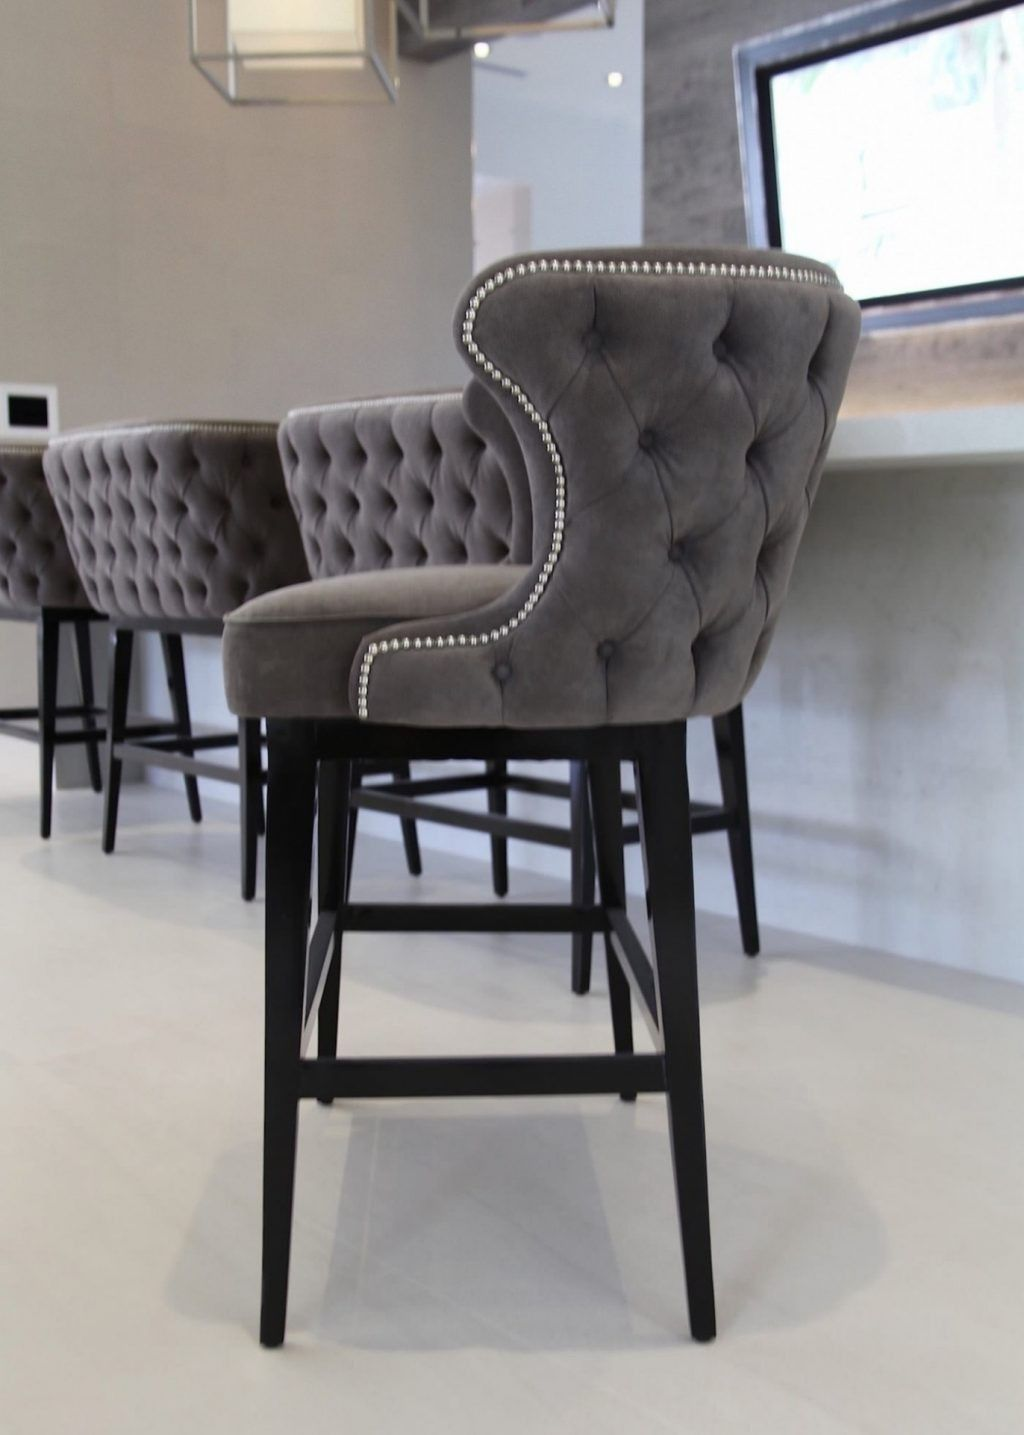 Bar Stool Bench Stools Wooden Kitchen Counter Height Upholstered